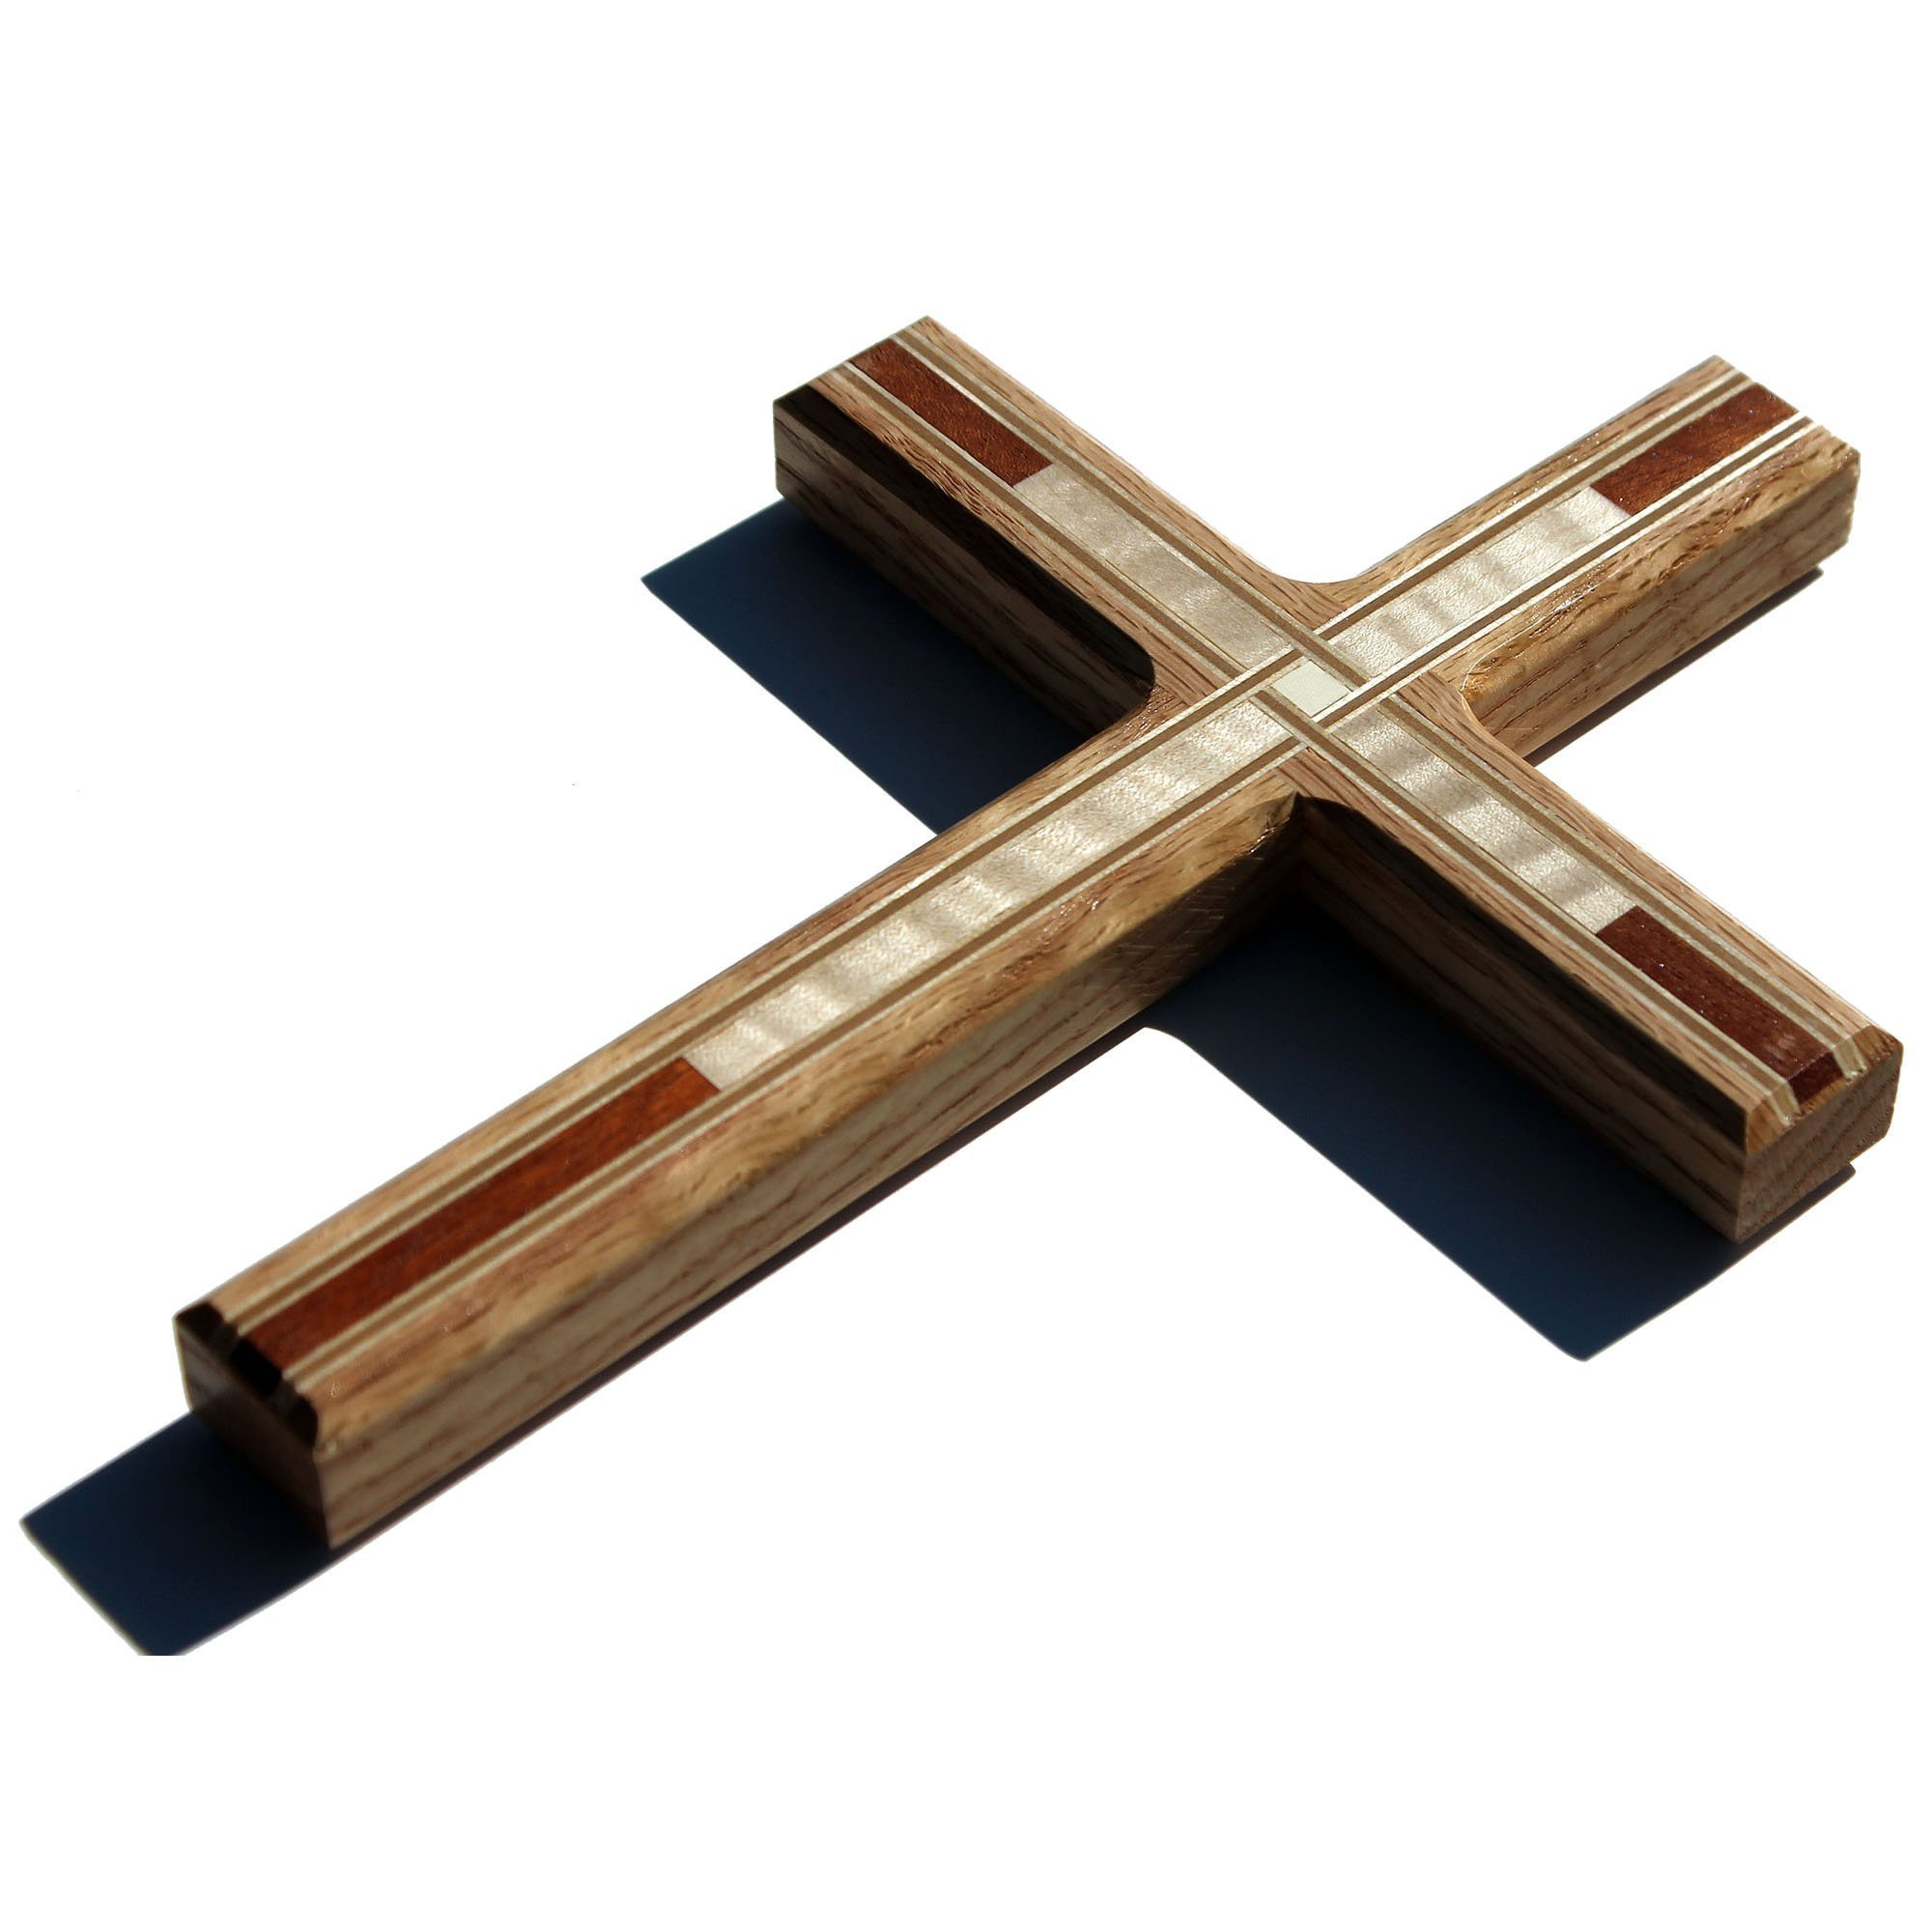 ''Limited Edition'' Decorative Wooden Wall Crosses: 8.5'' Tall Red Oak Wood Christian Cross - Made in the USA!